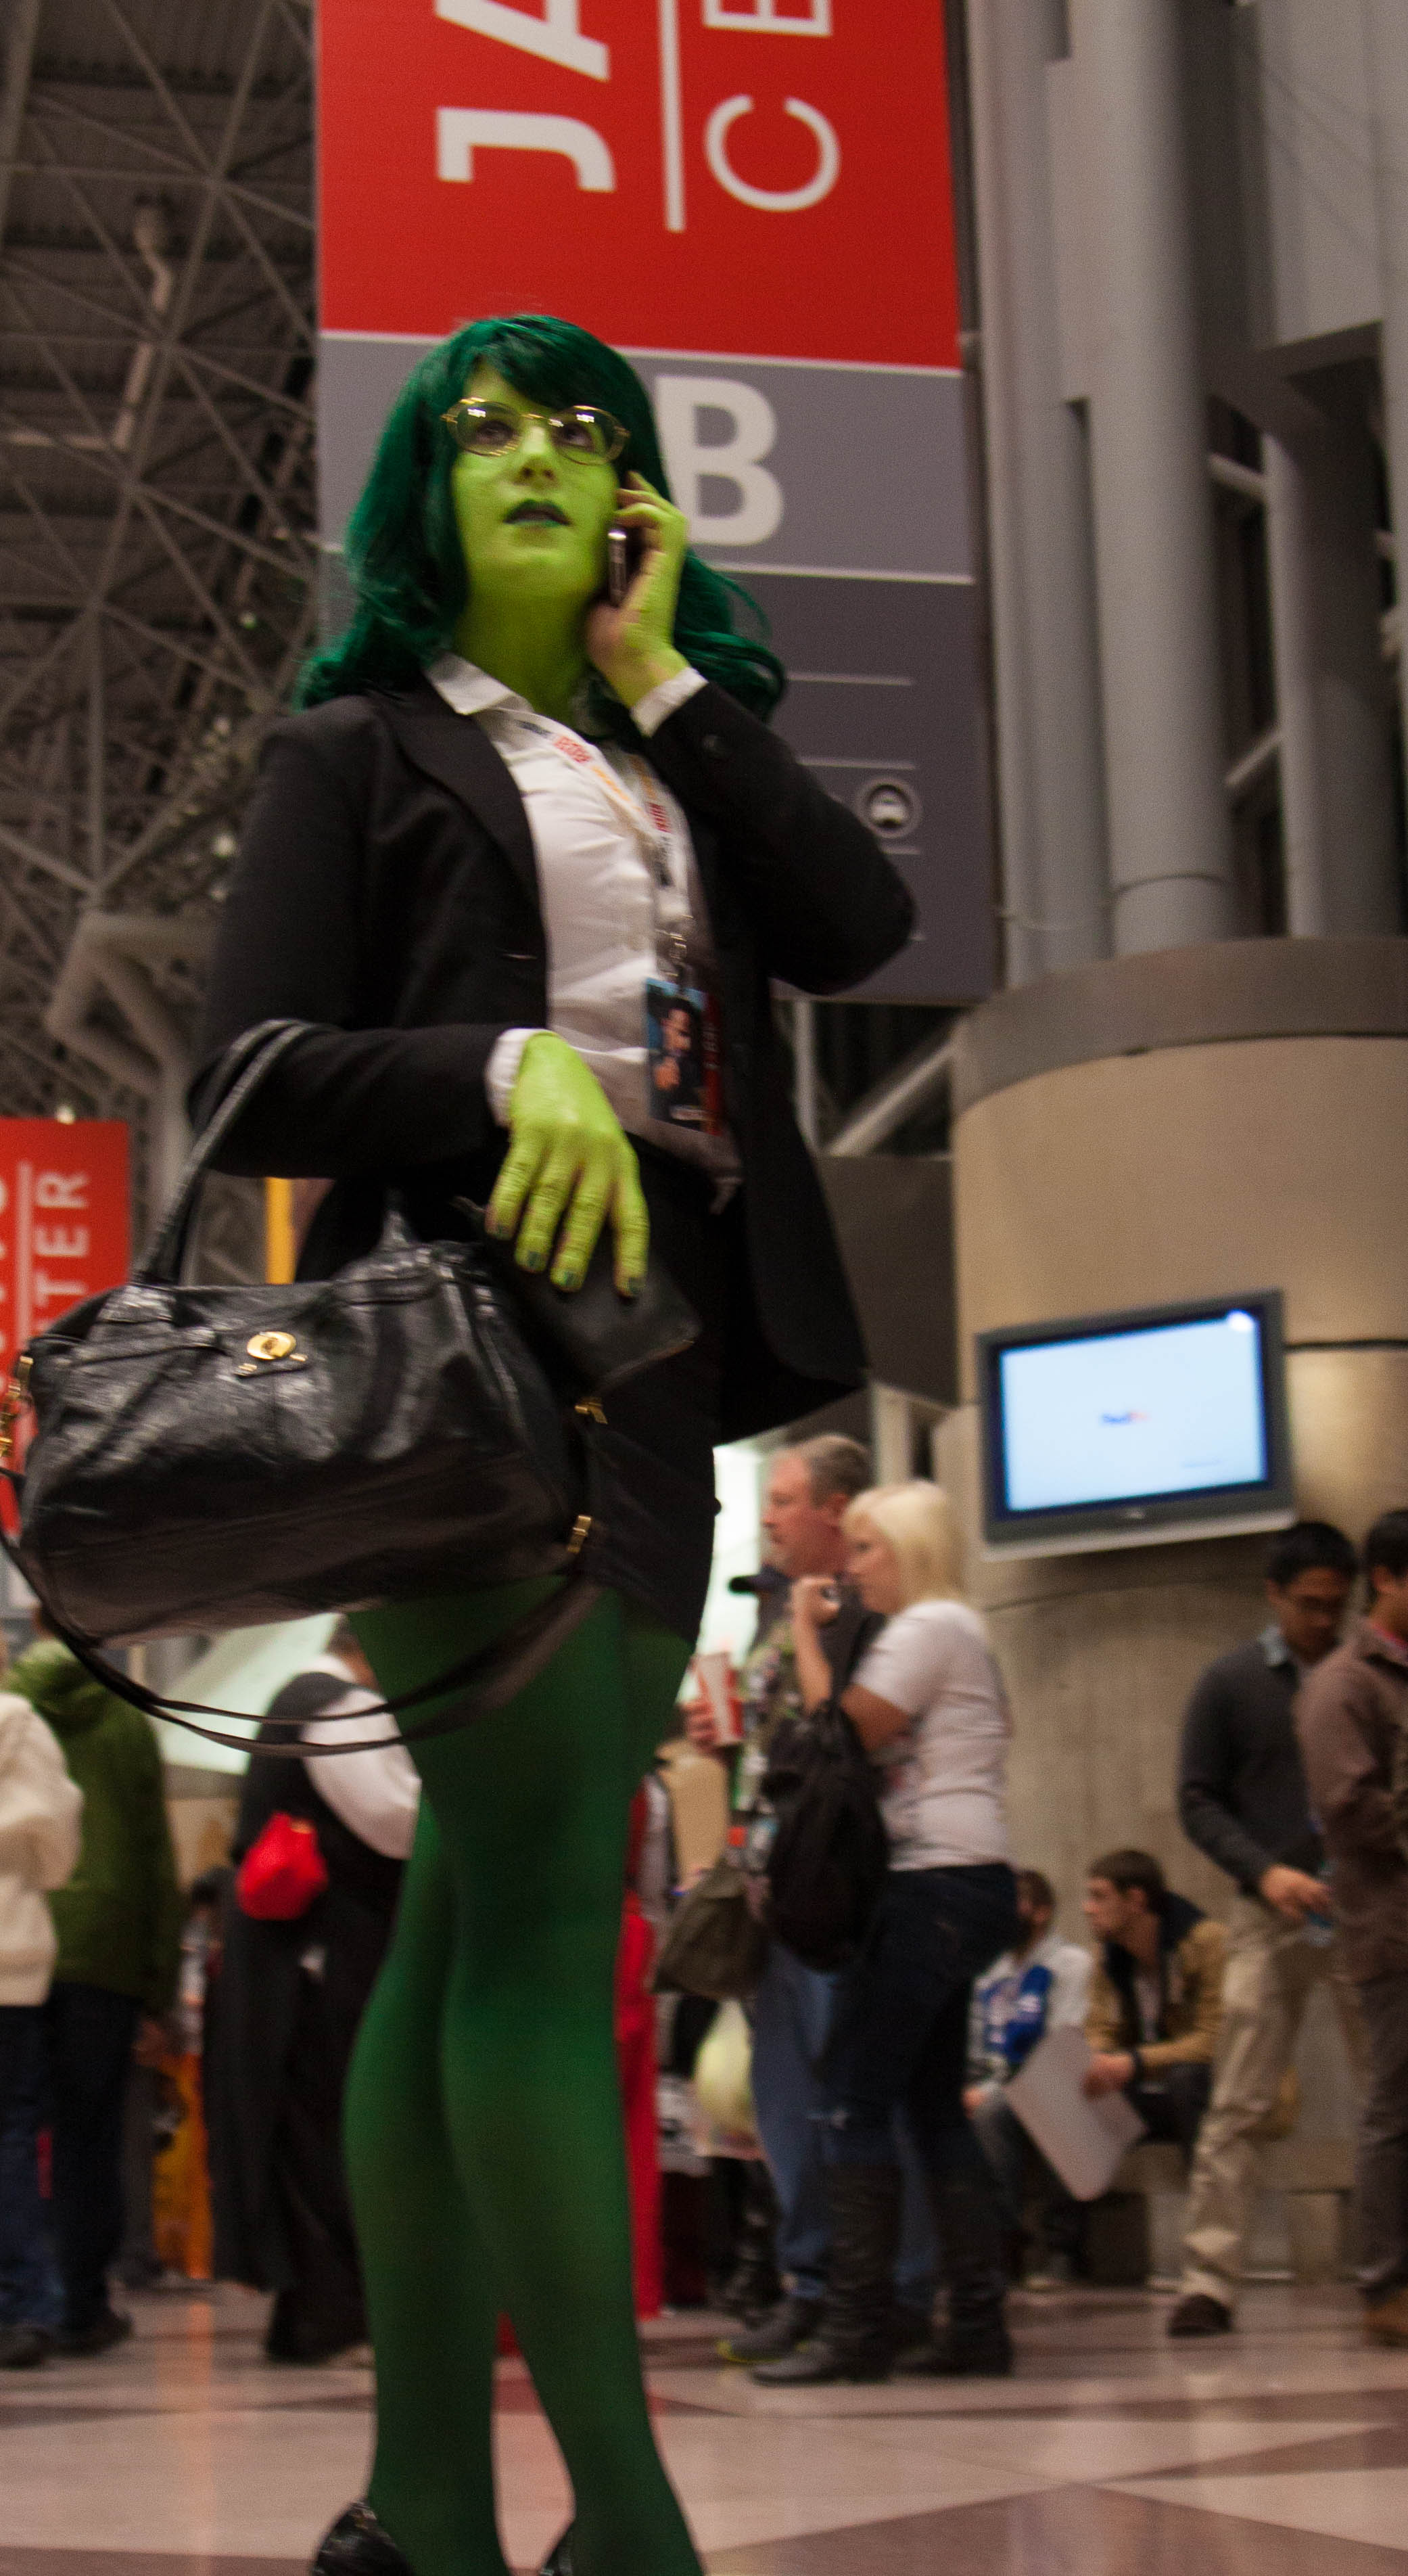 She-Hulk_cosplay_lawyer_suit_NYCC2012.jp